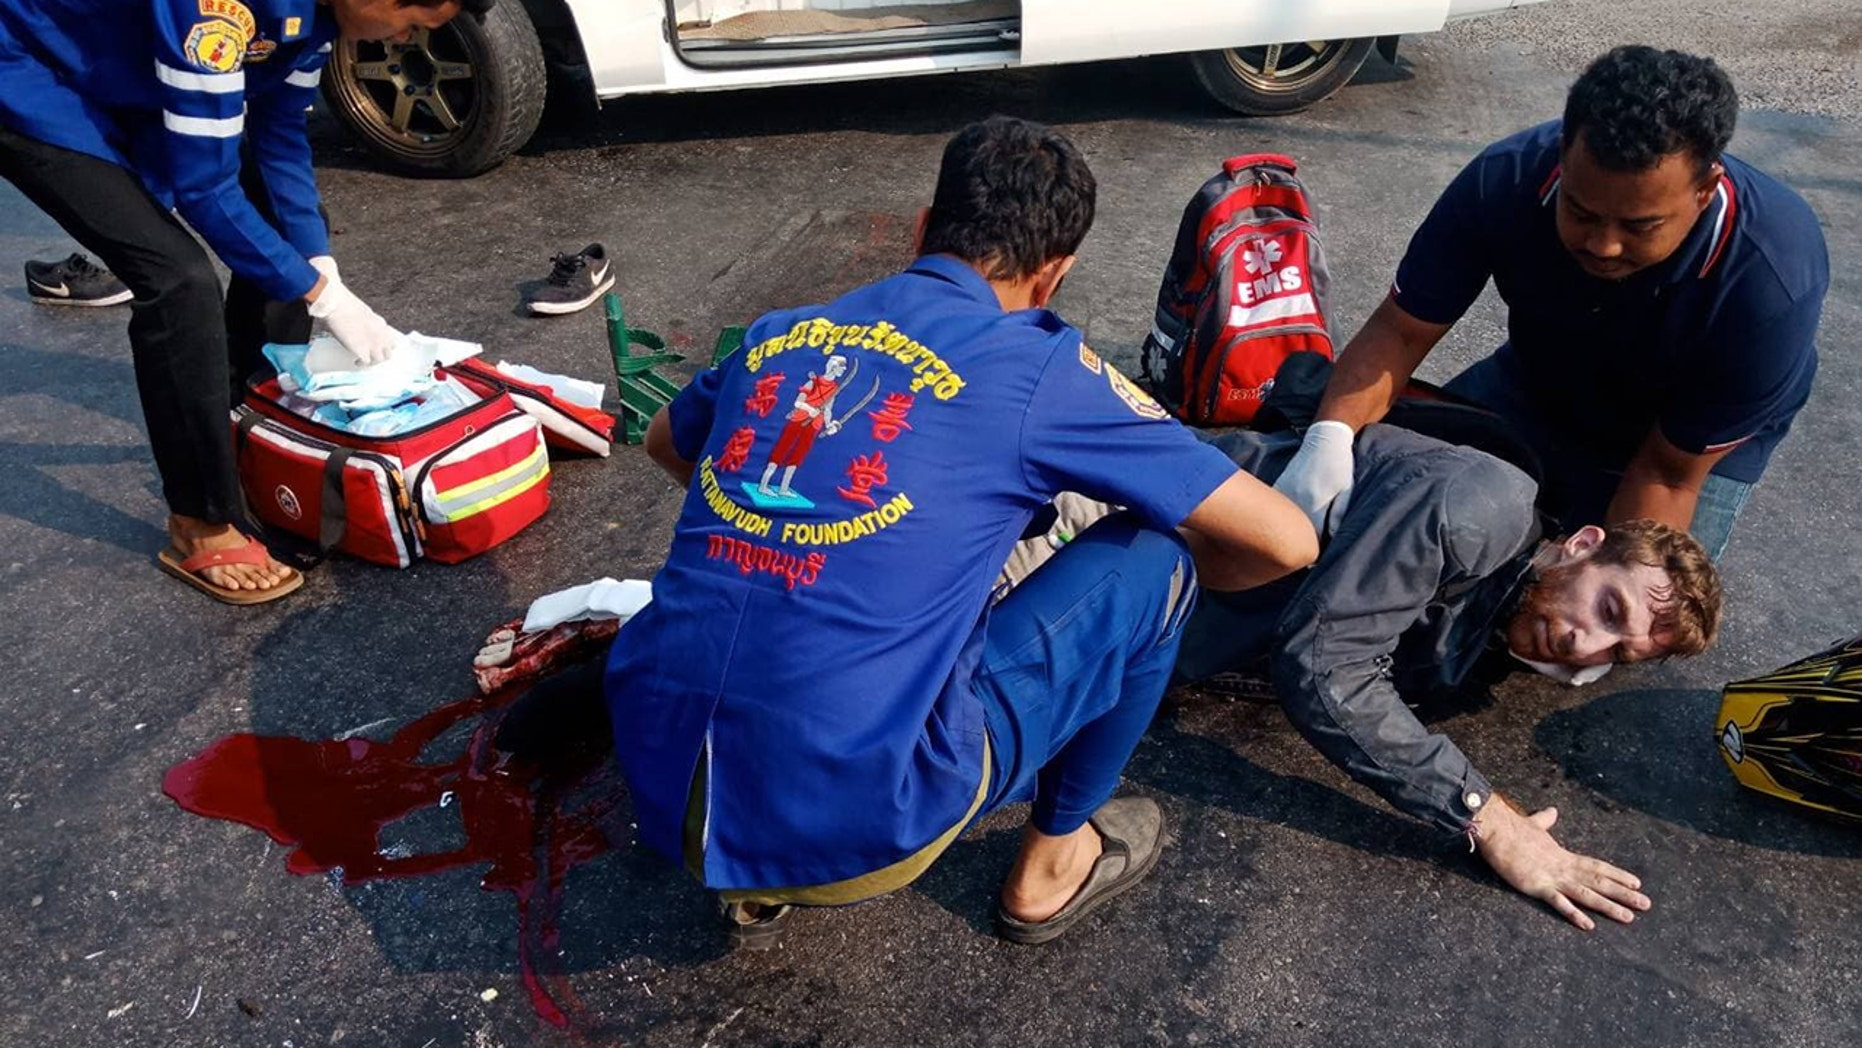 A British man had his right leg amputated and is fighting for his life after a horror motorbike crash in Thailand.